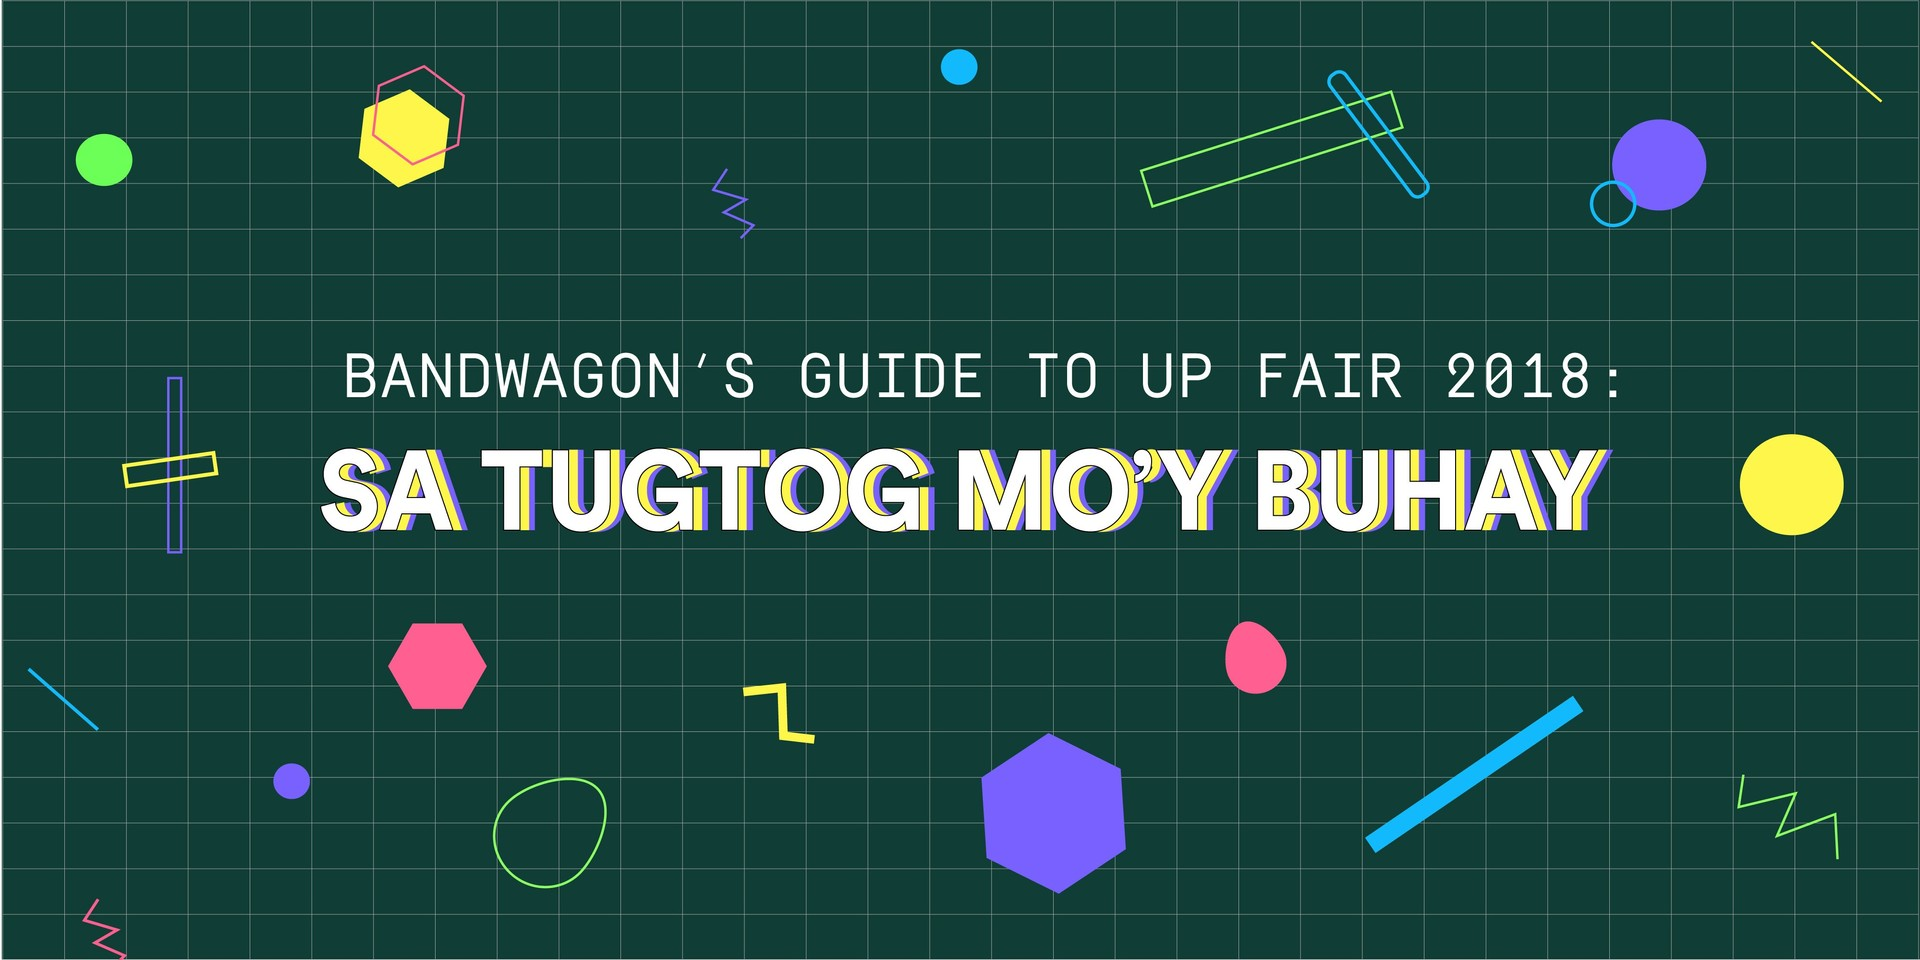 Bandwagon's Guide to UP Fair 2018